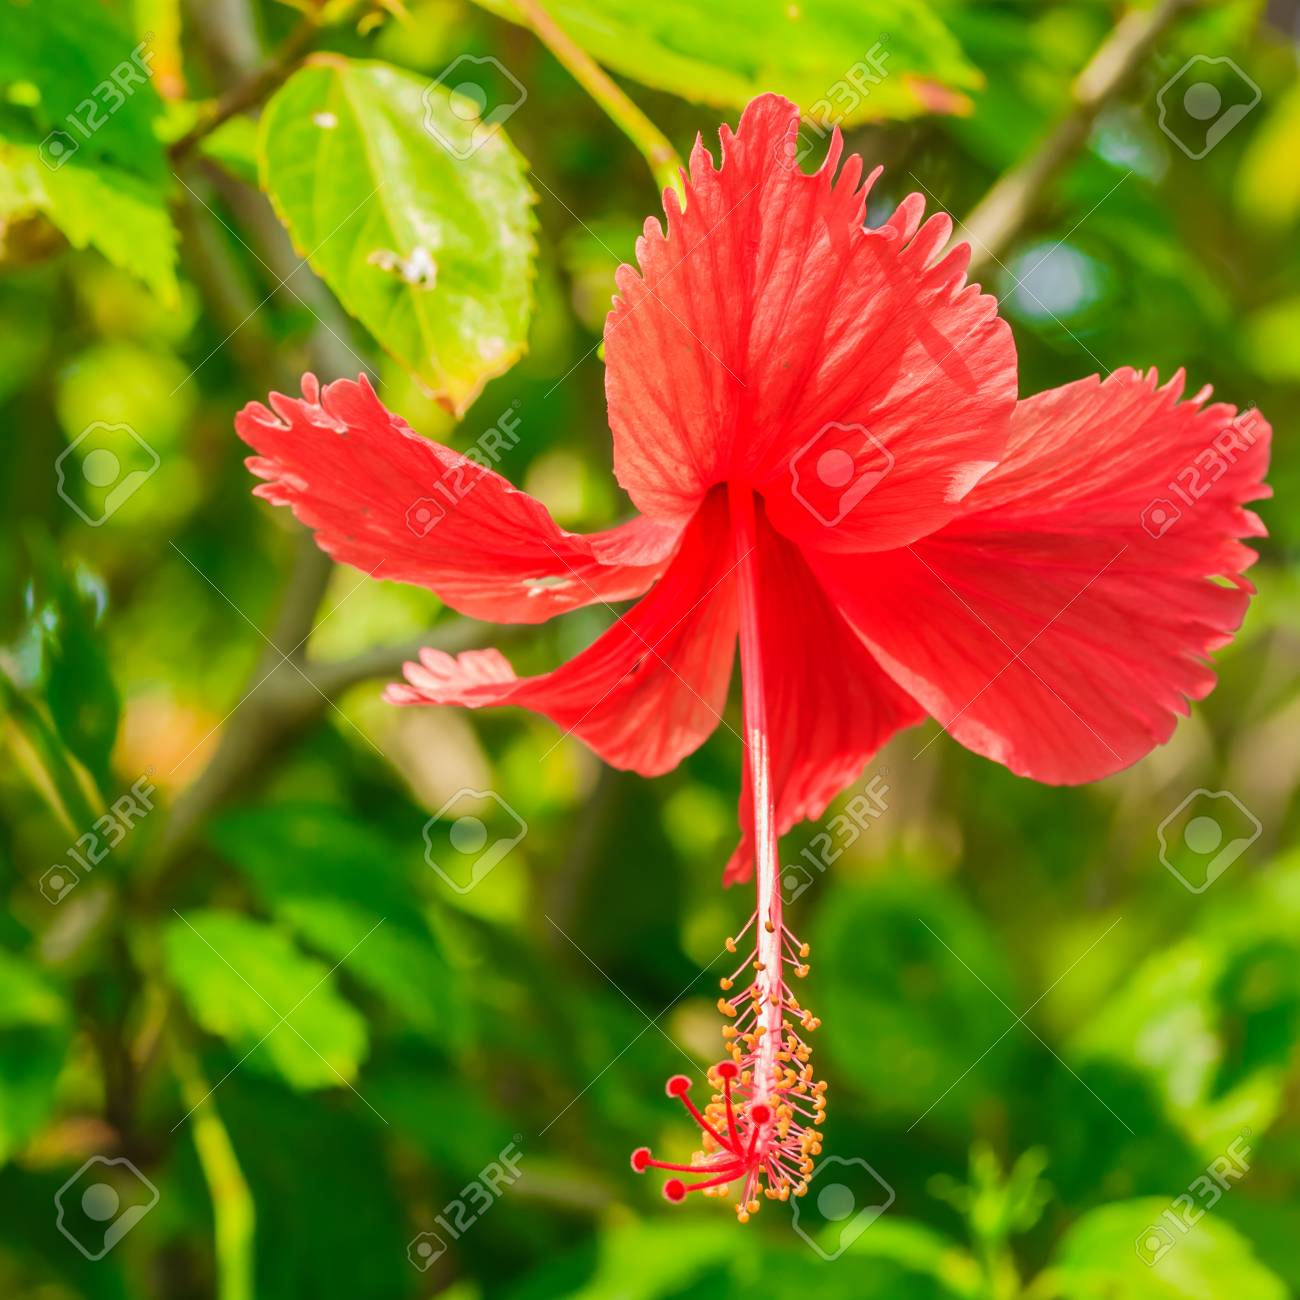 The Brilliant Red Flower Of An Hibiscus Glowing In The Sun Stock